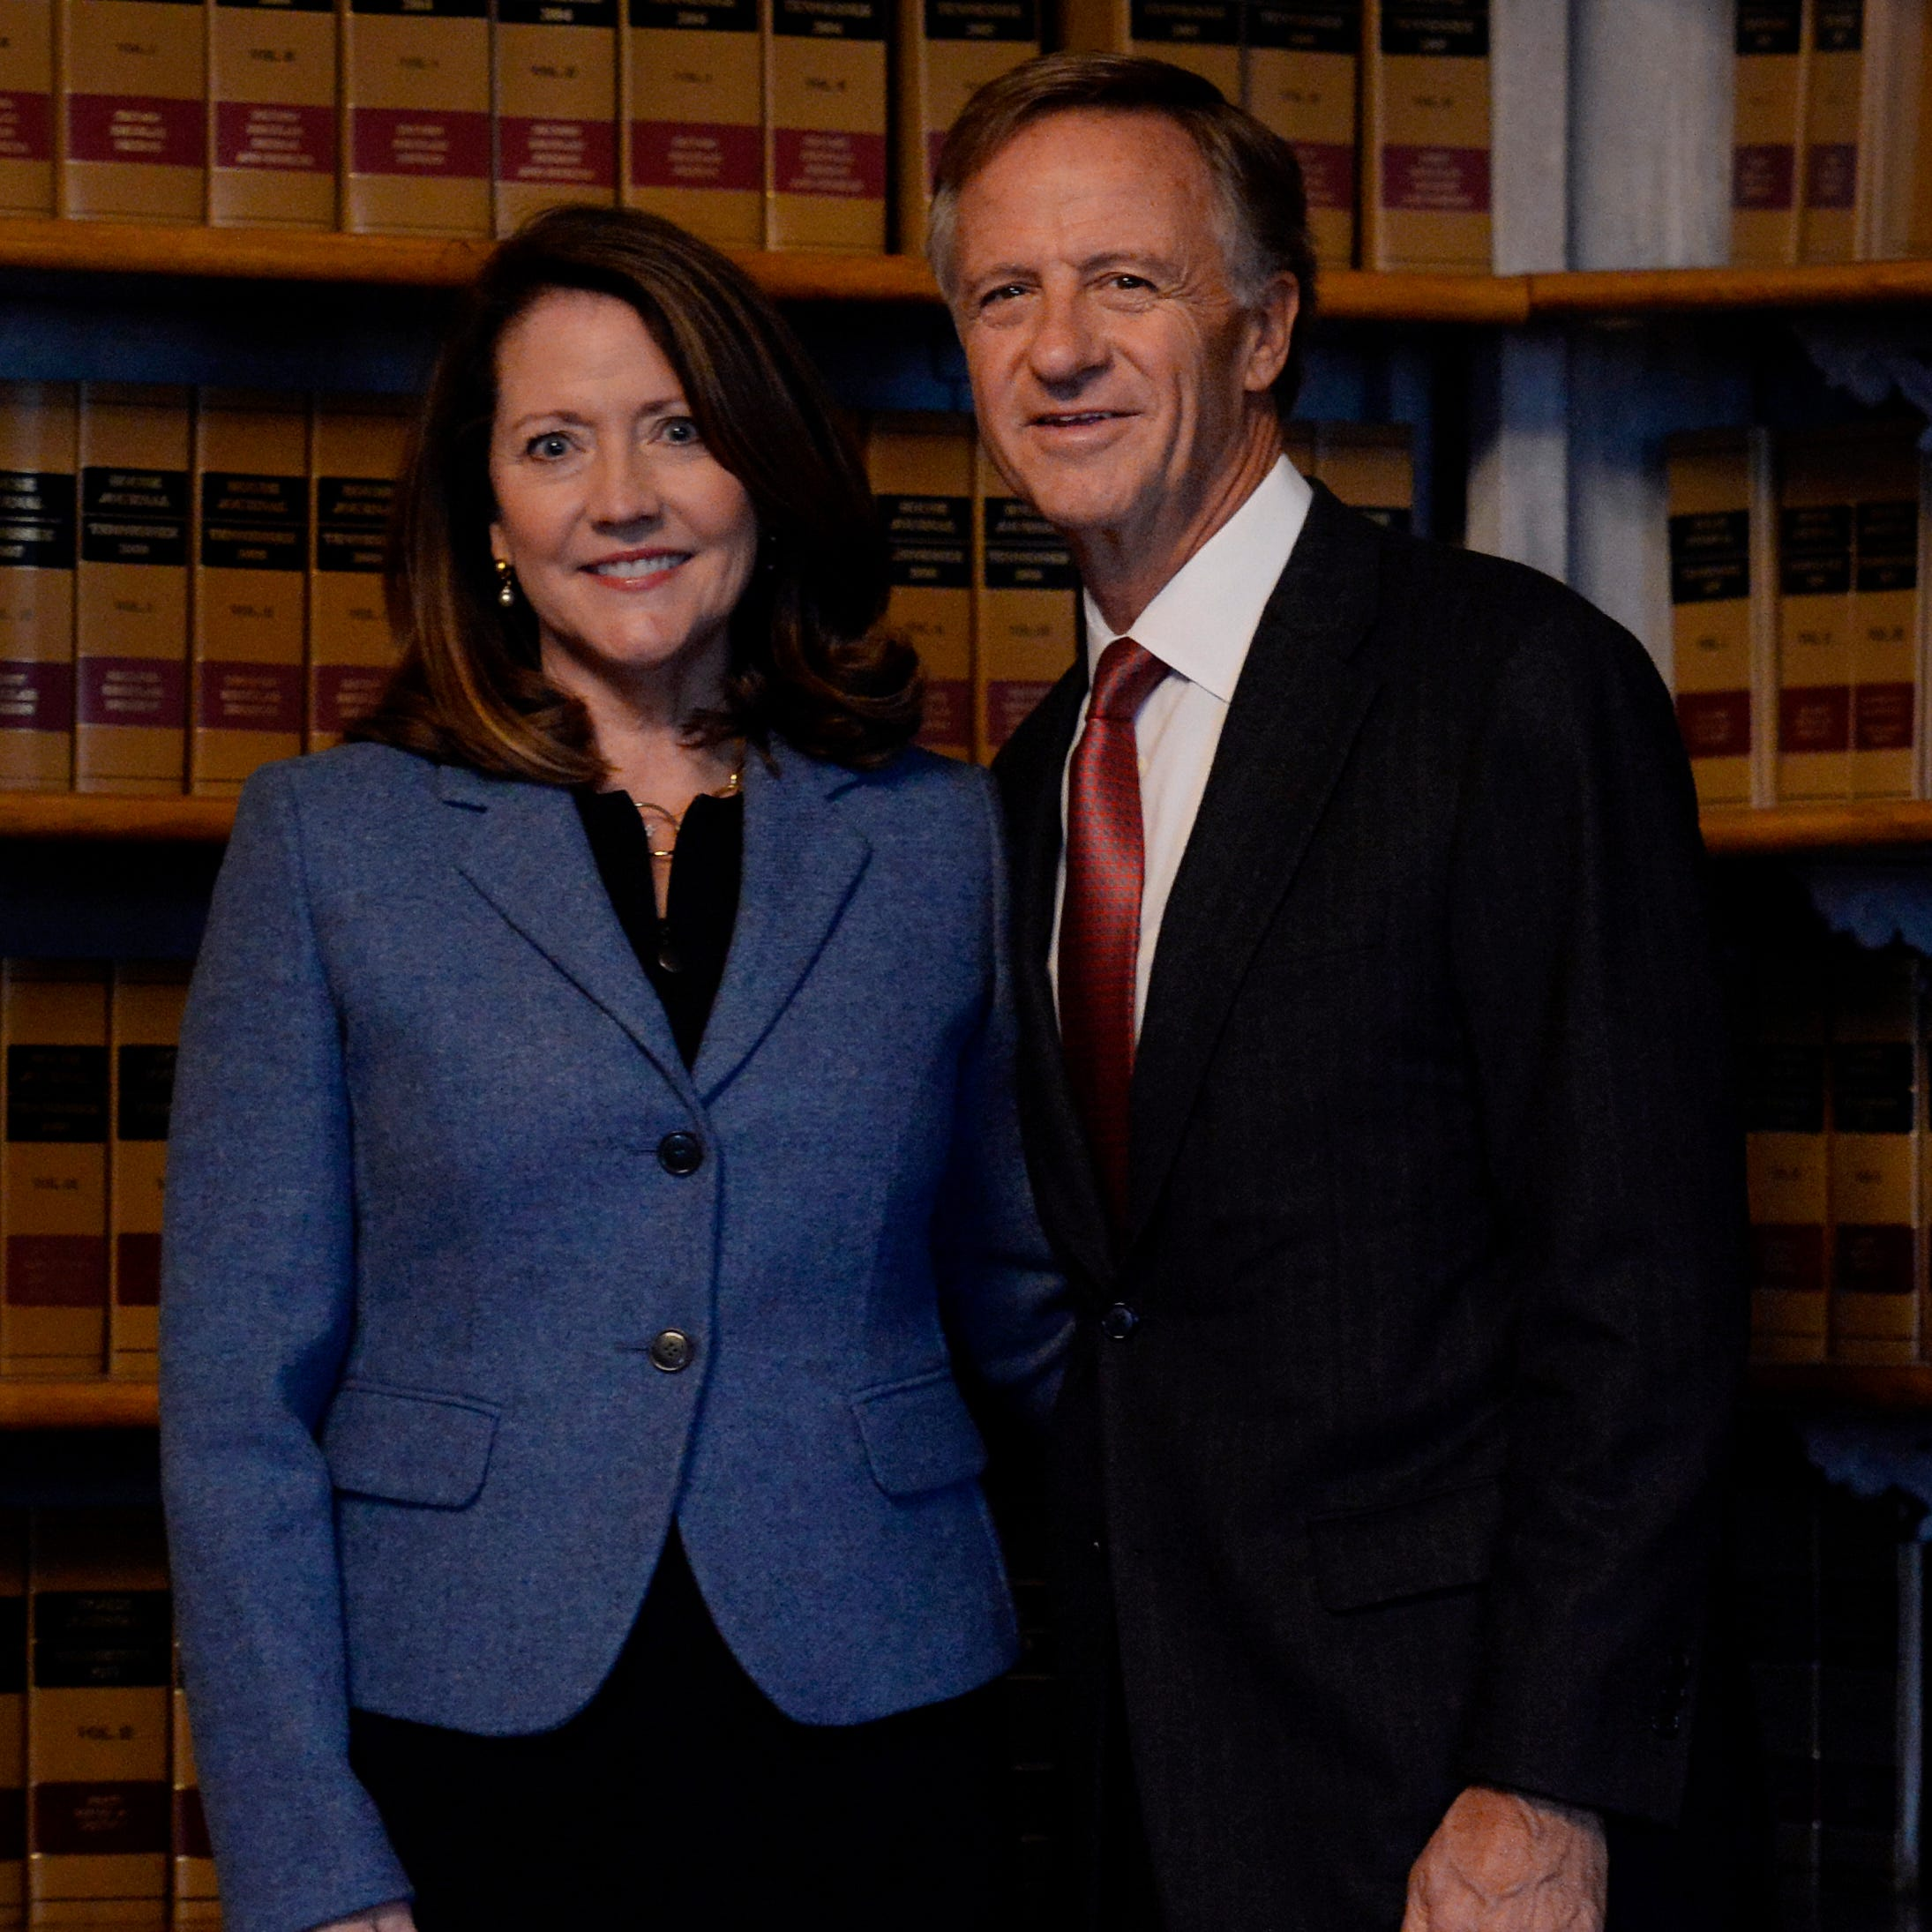 Bill and Crissy Haslam honored as Tennessean People of the Year for their service